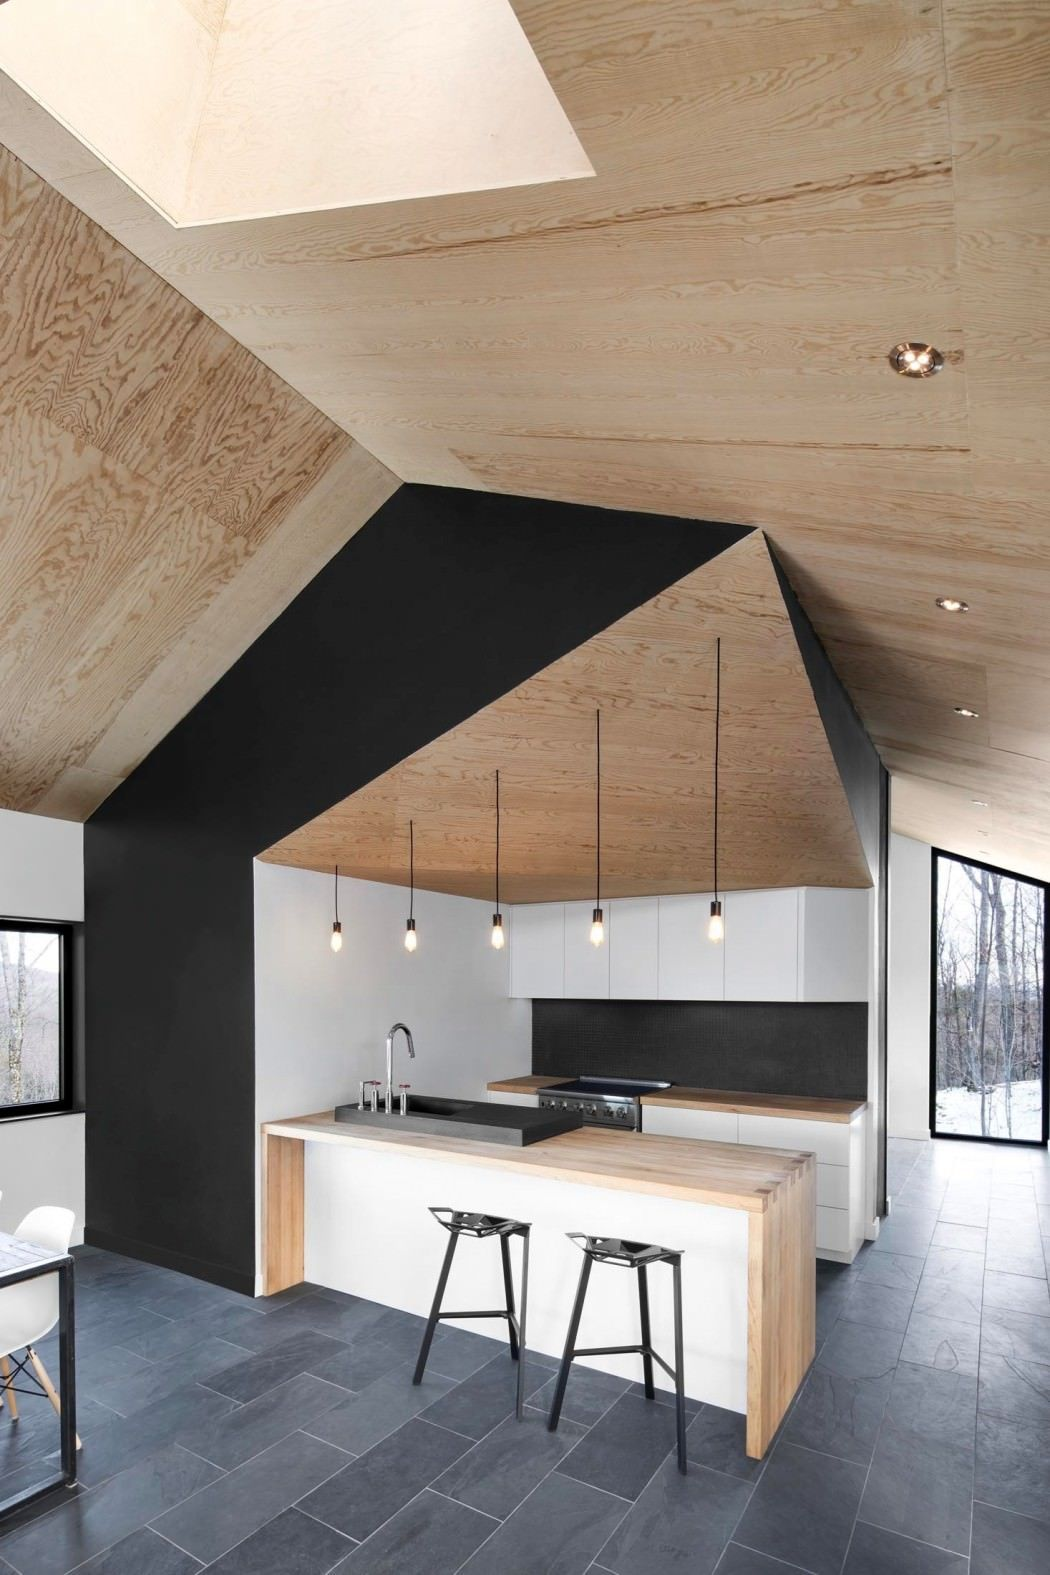 Bolton Residence by naturehumaine Bolton Residence by